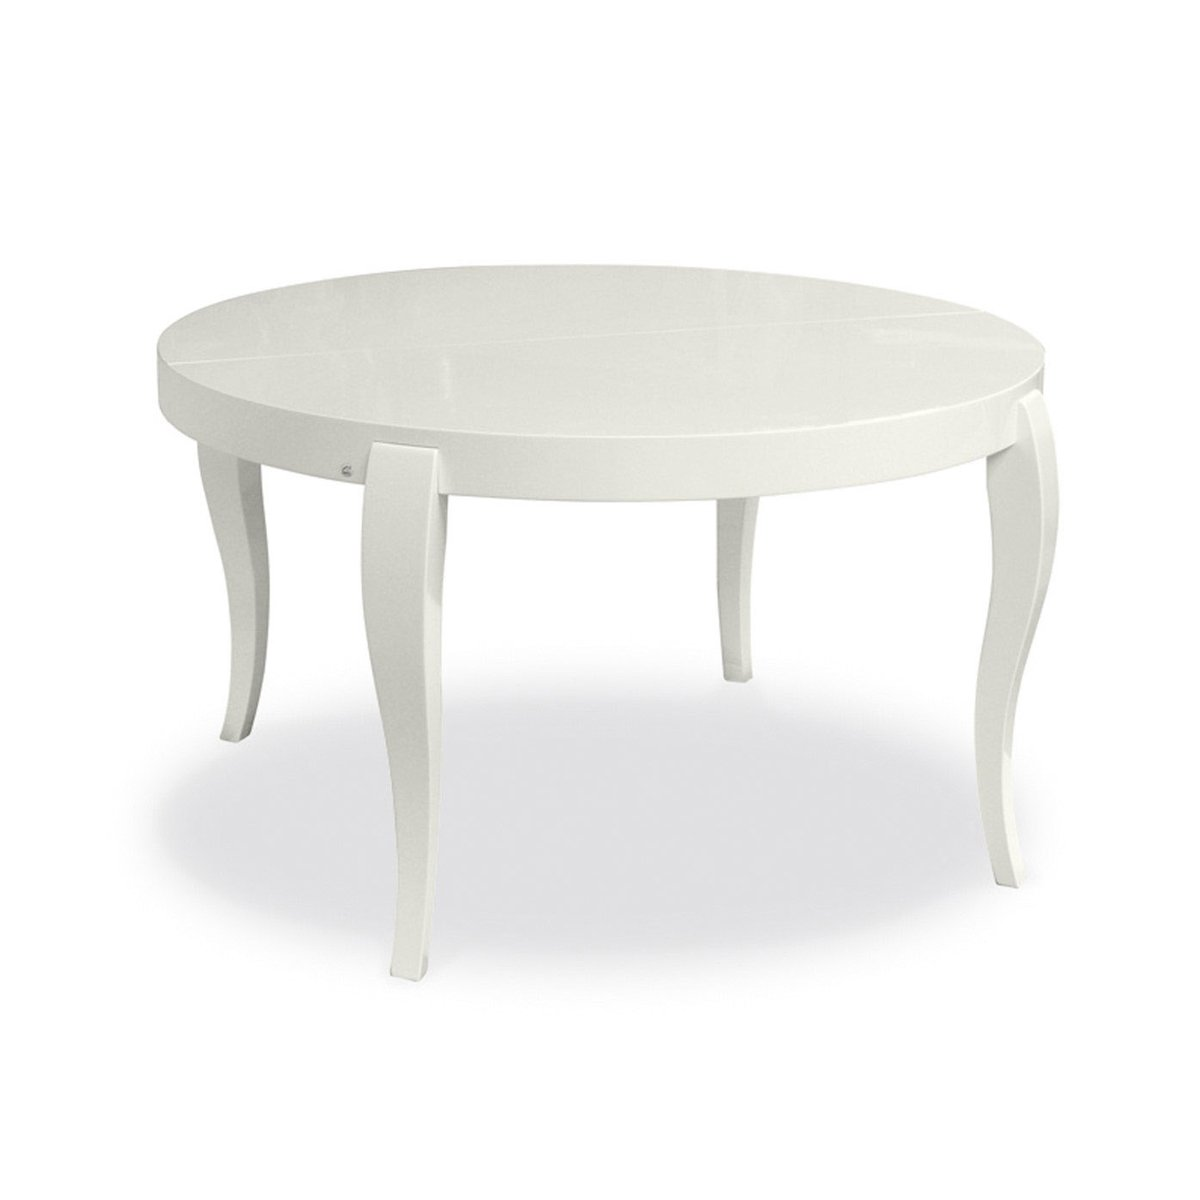 Table de repas extensible ronde regency meubles et - Table ronde extensible design ...